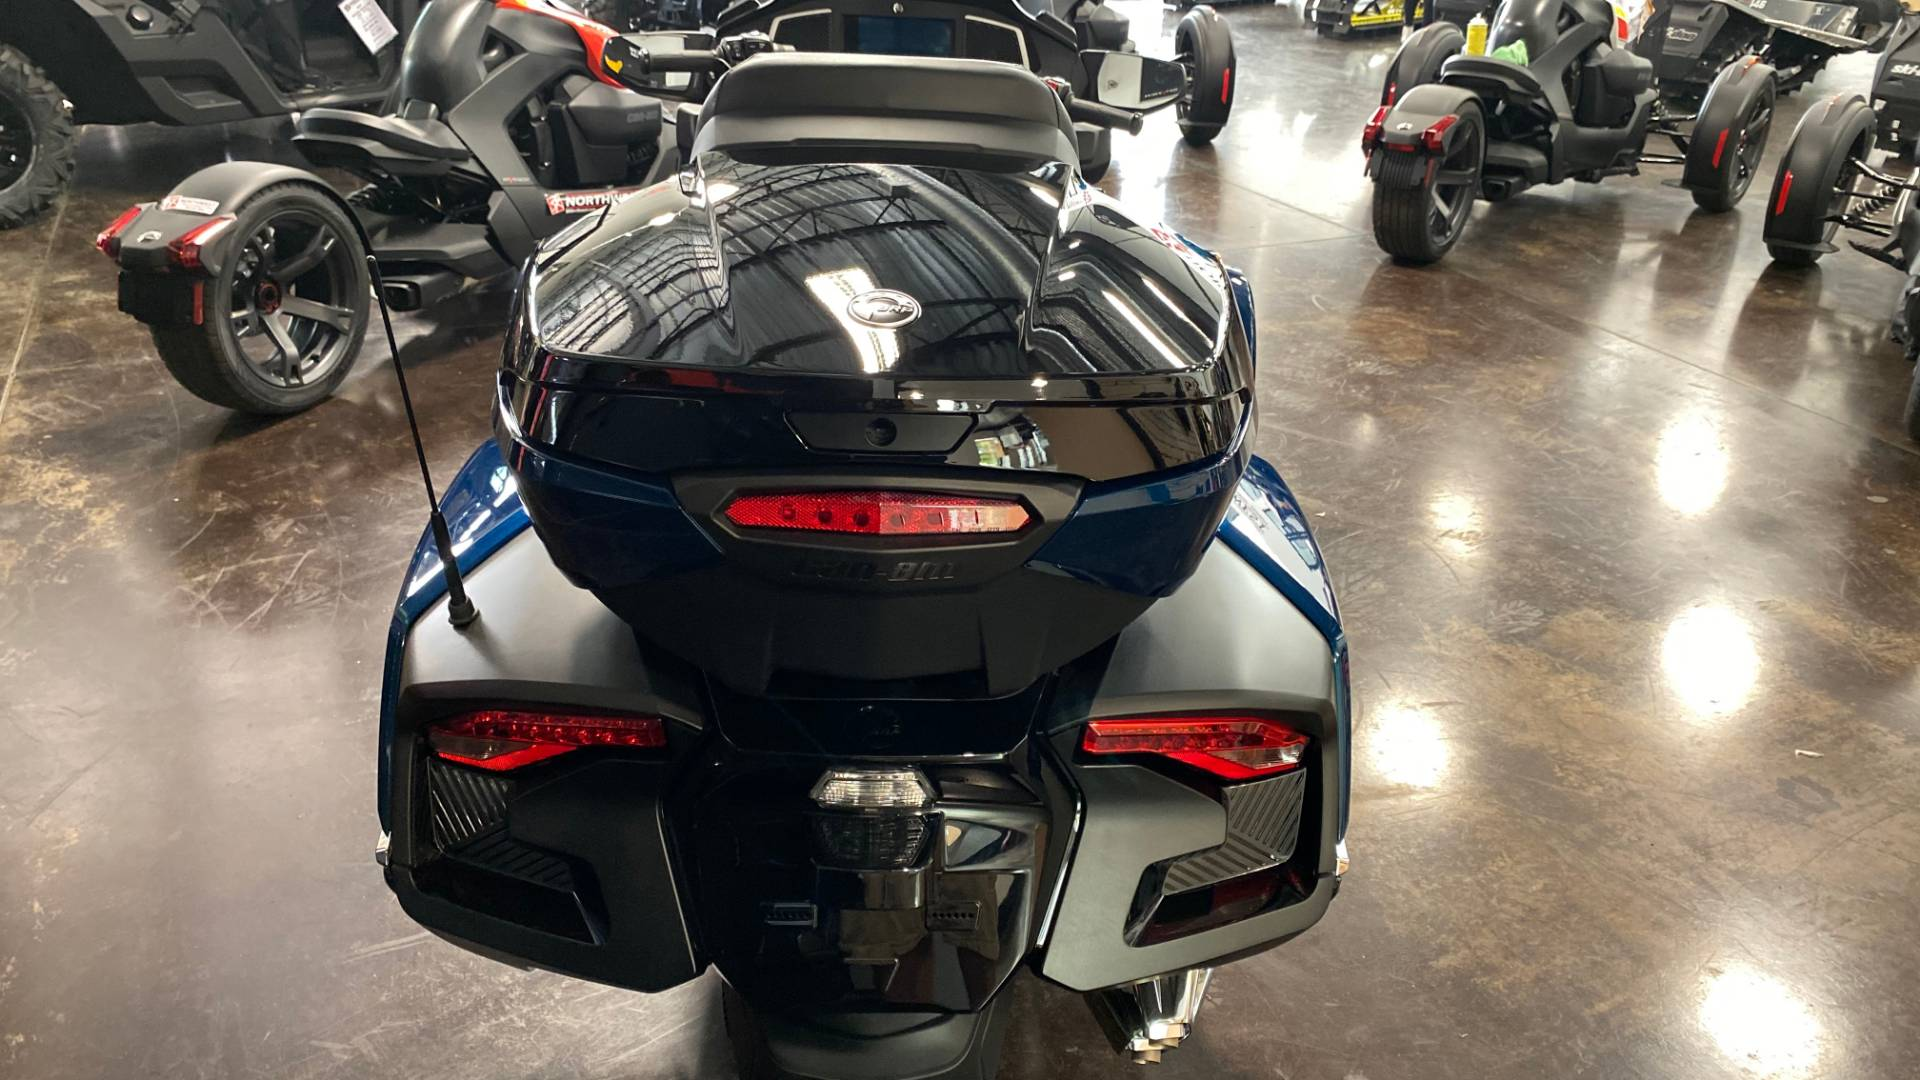 2020 Can-Am Spyder RT Limited in Portland, Oregon - Photo 7